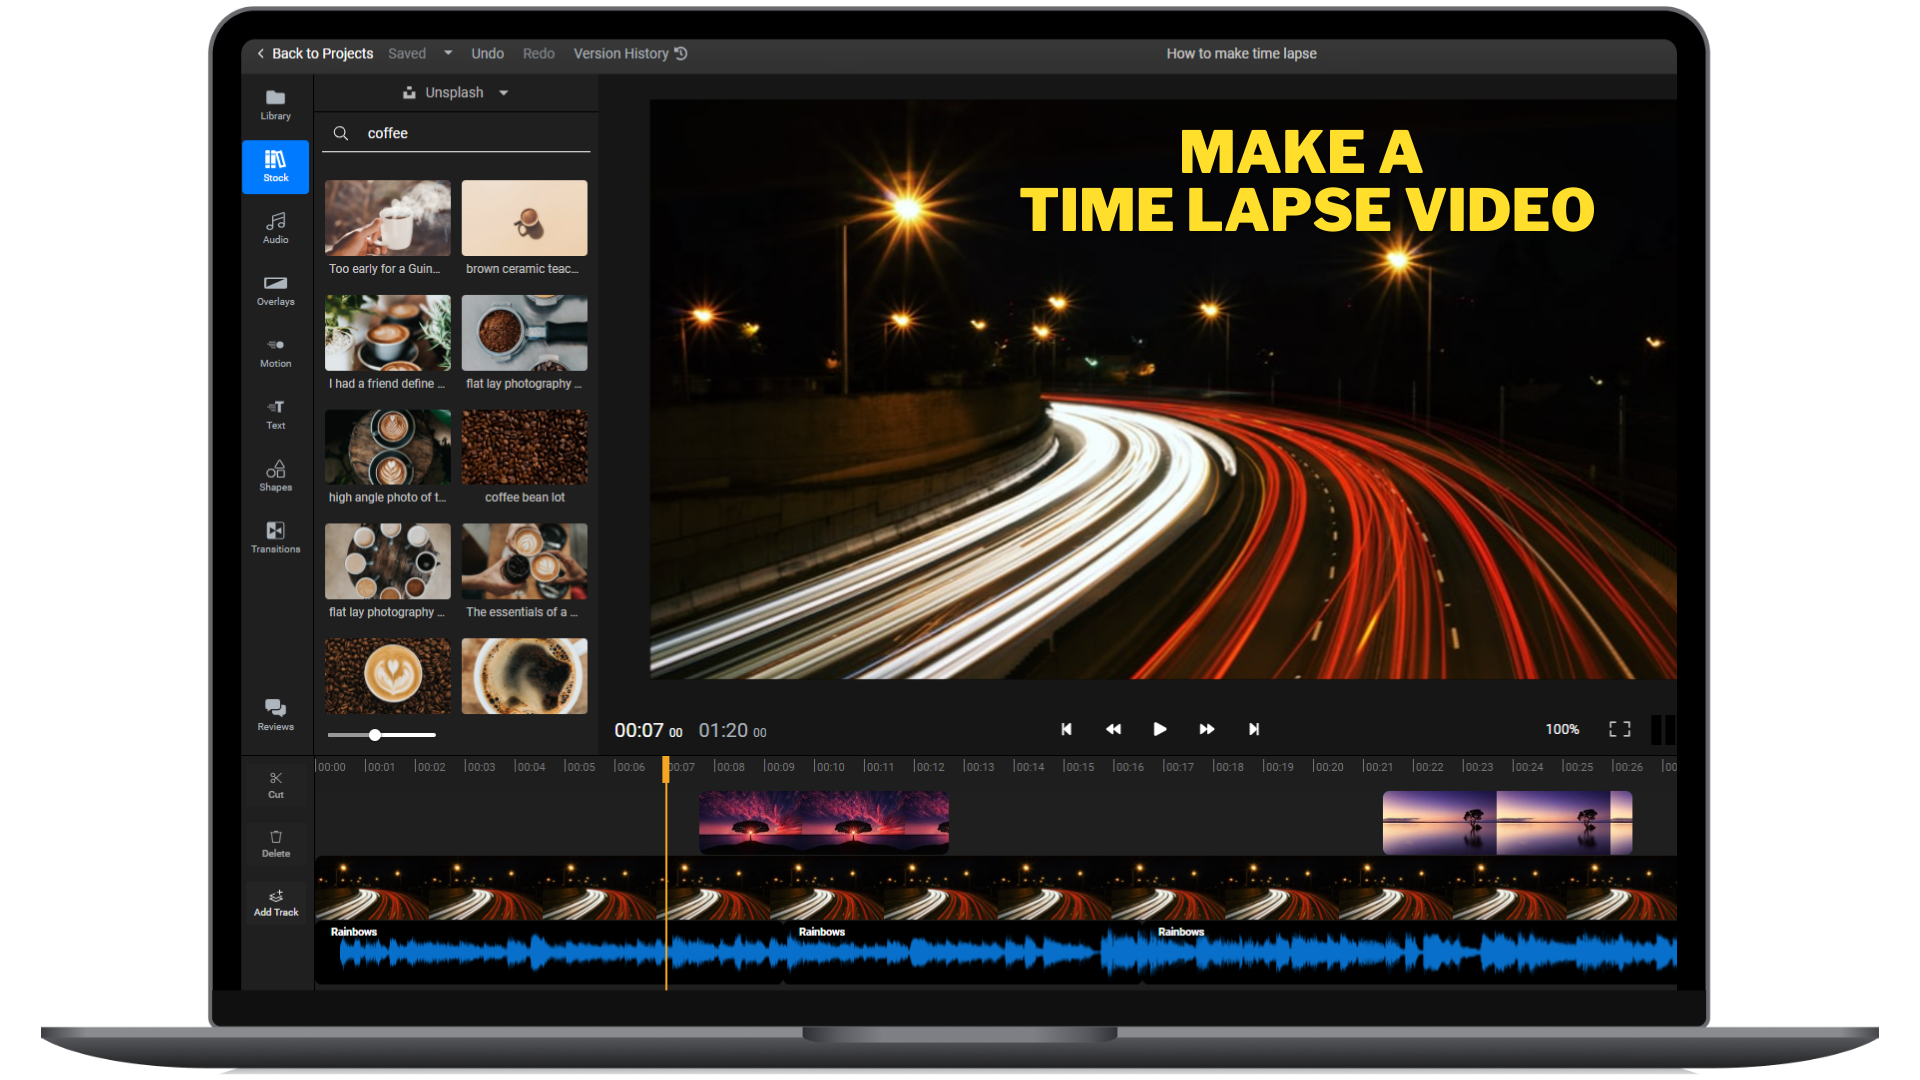 How to make a timelapse video